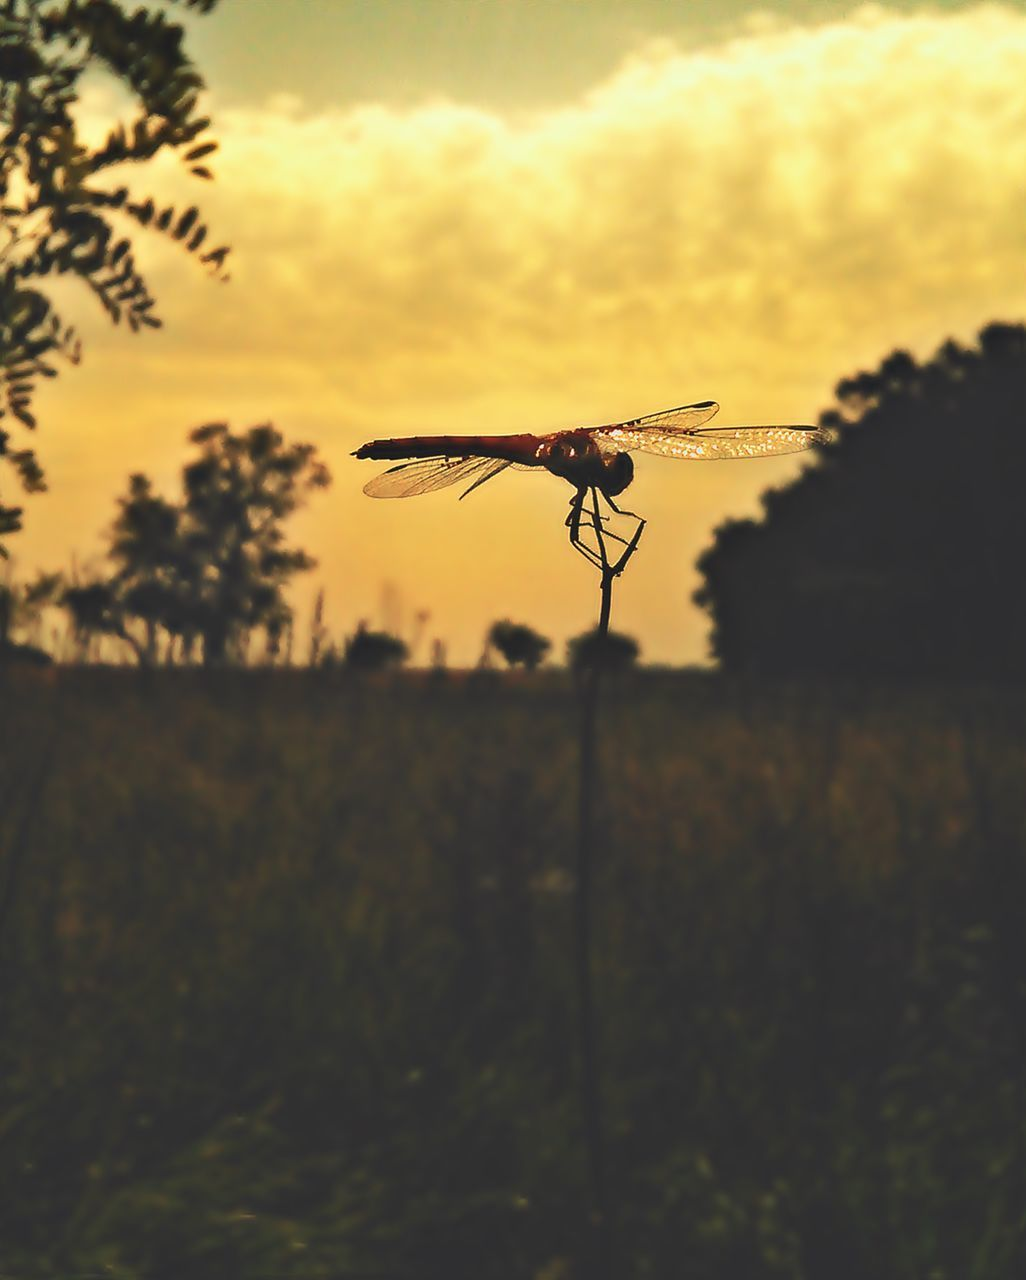 CLOSE-UP OF INSECT AGAINST SKY AT SUNSET